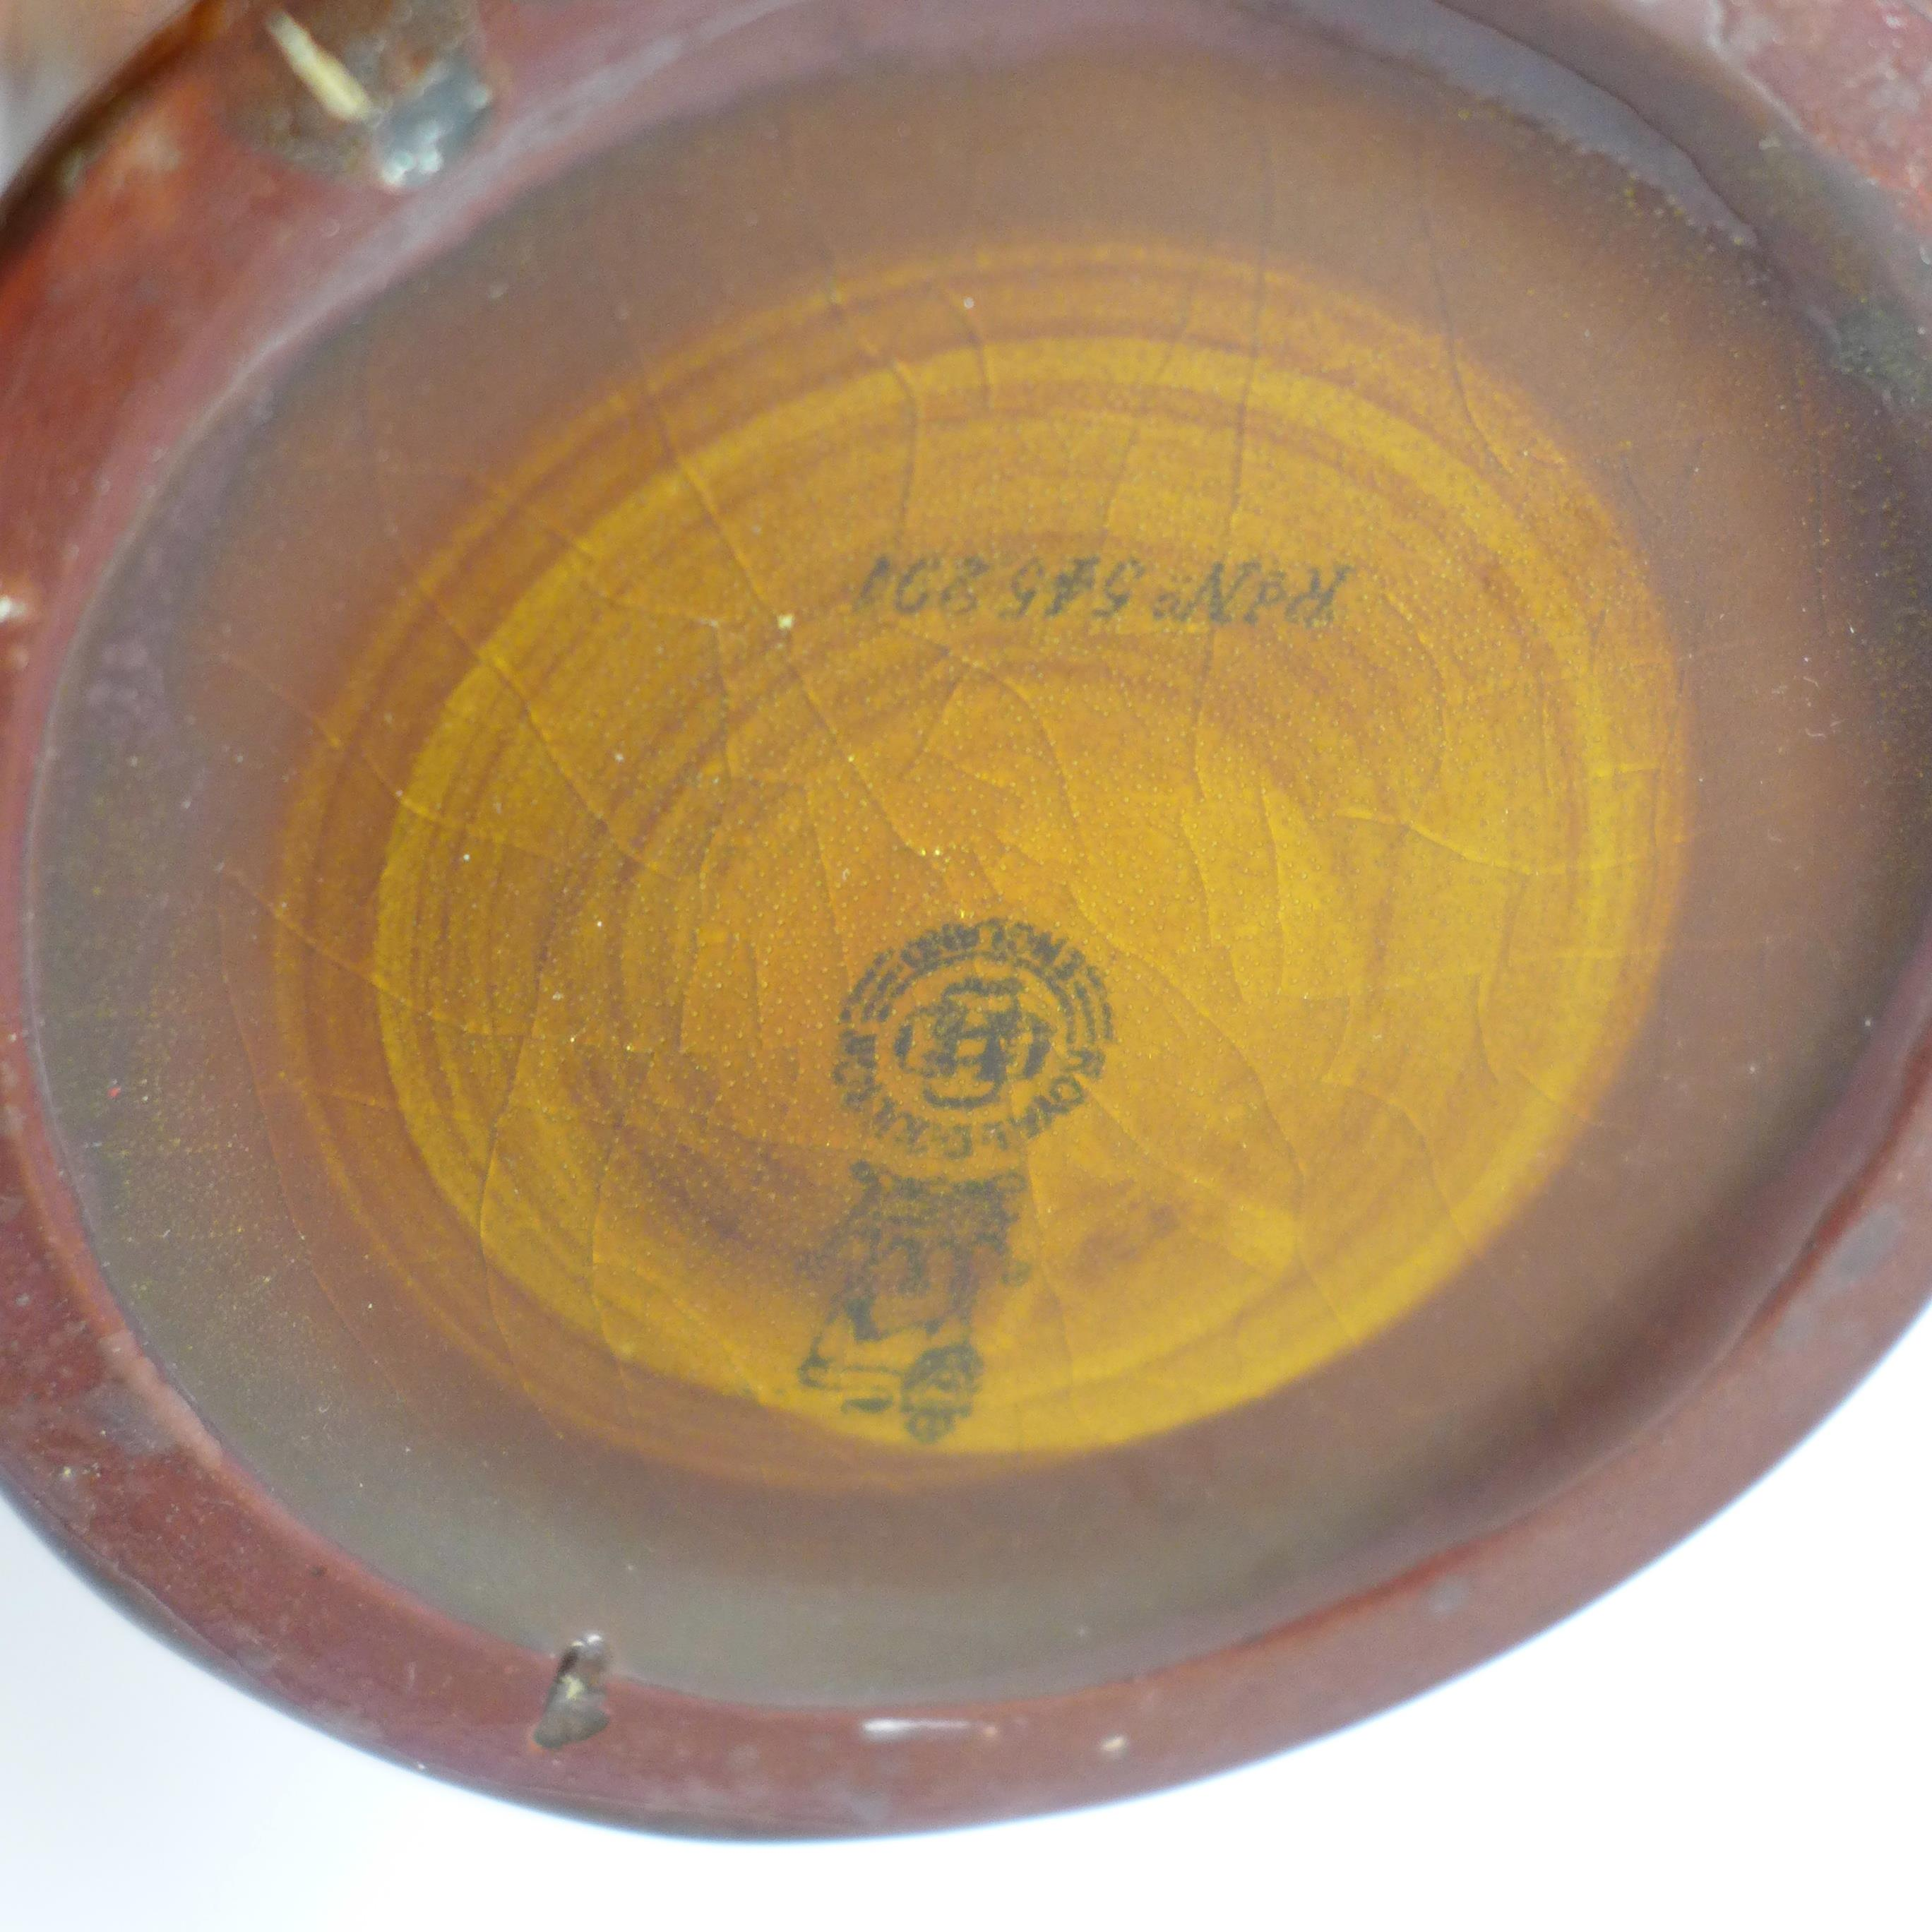 A Doulton Kingsware Dewars whisky flask with image of George the Guard - Image 4 of 5